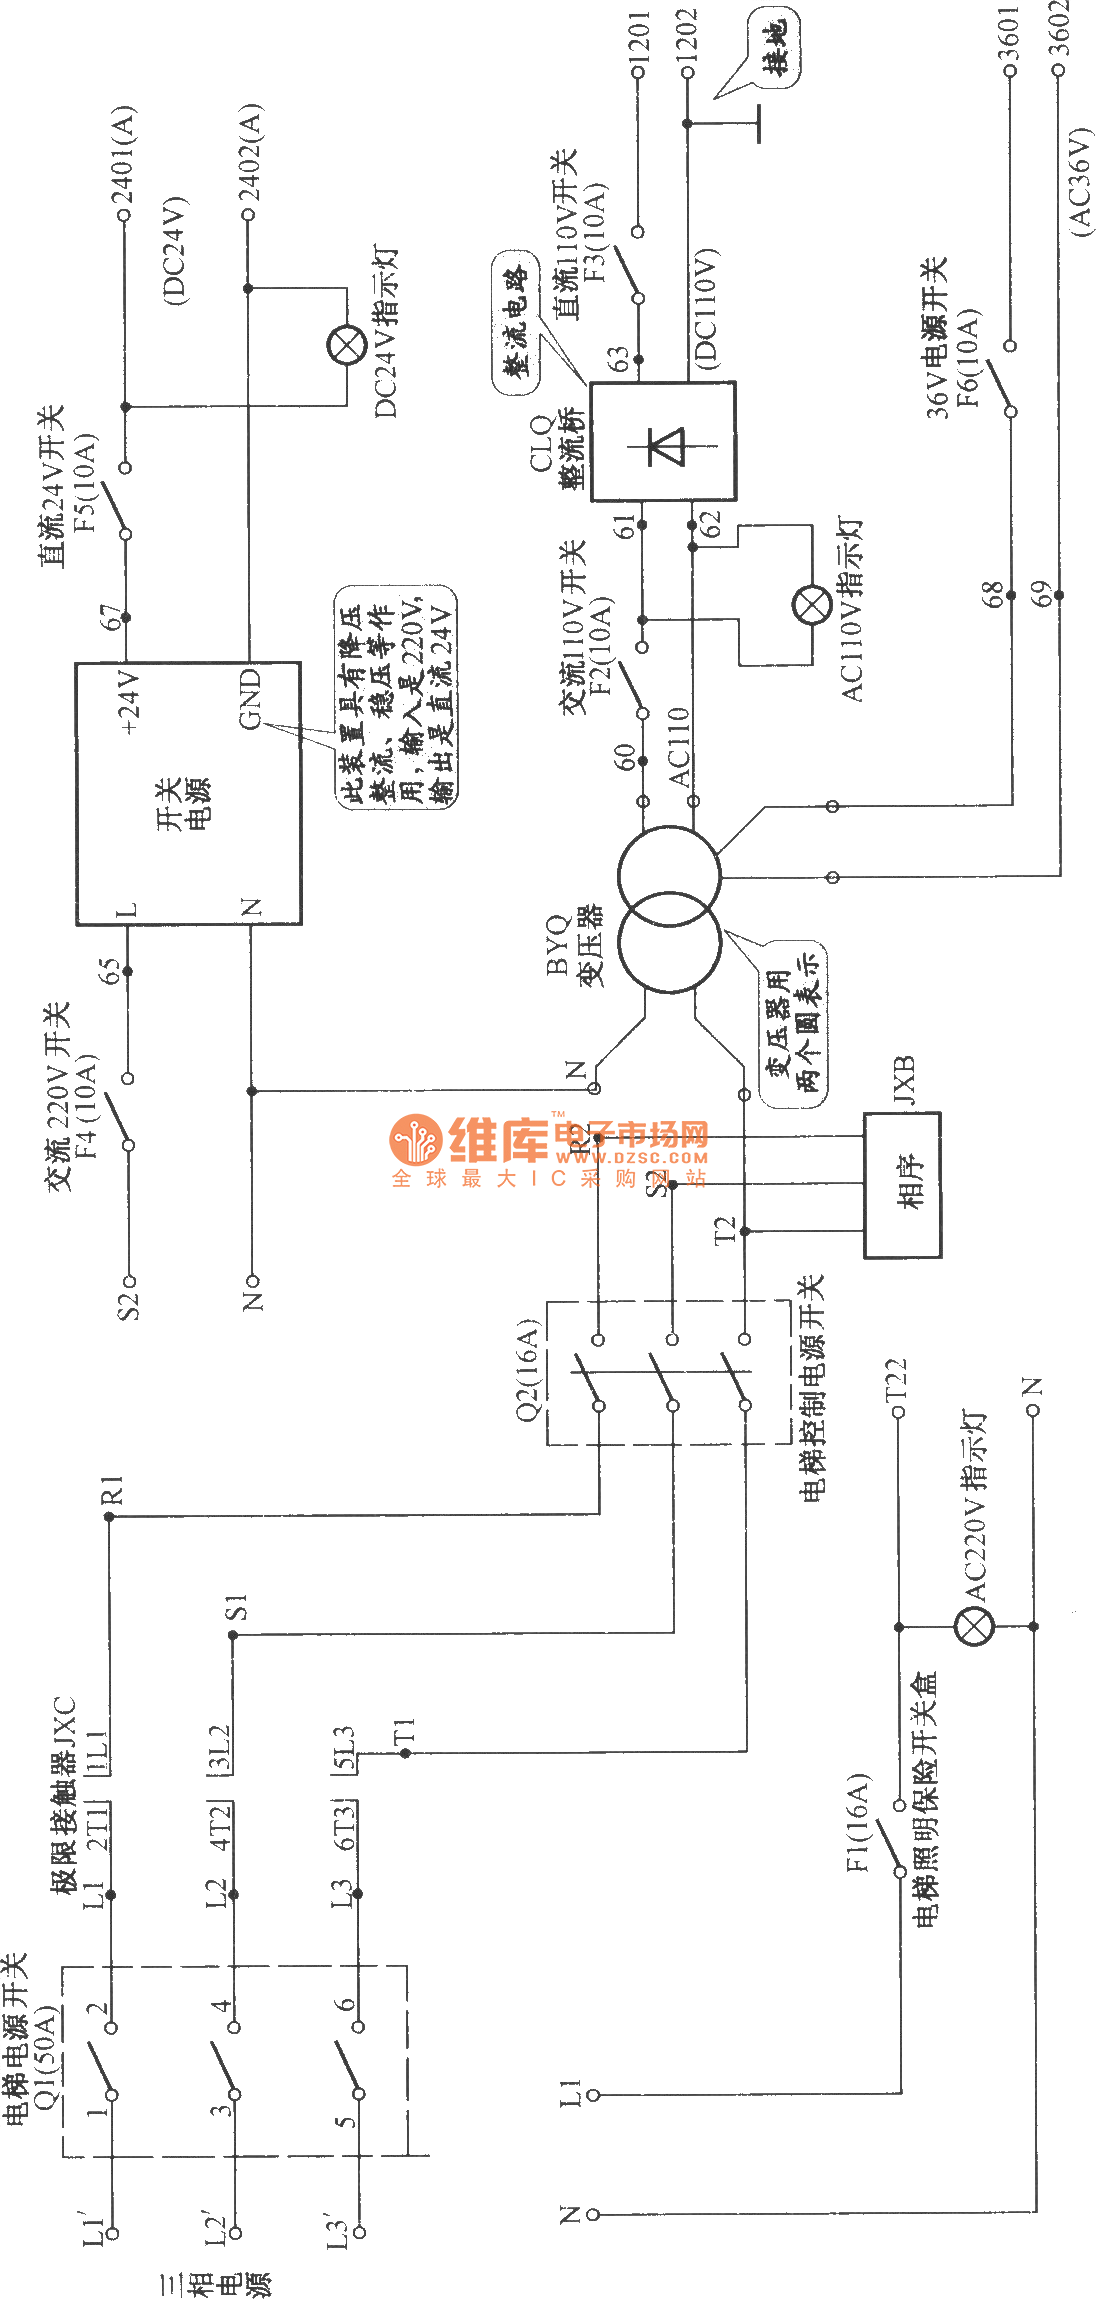 similiar hydraulic elevator parts diagram keywords hydraulic elevator wiring diagram image wiring diagram engine